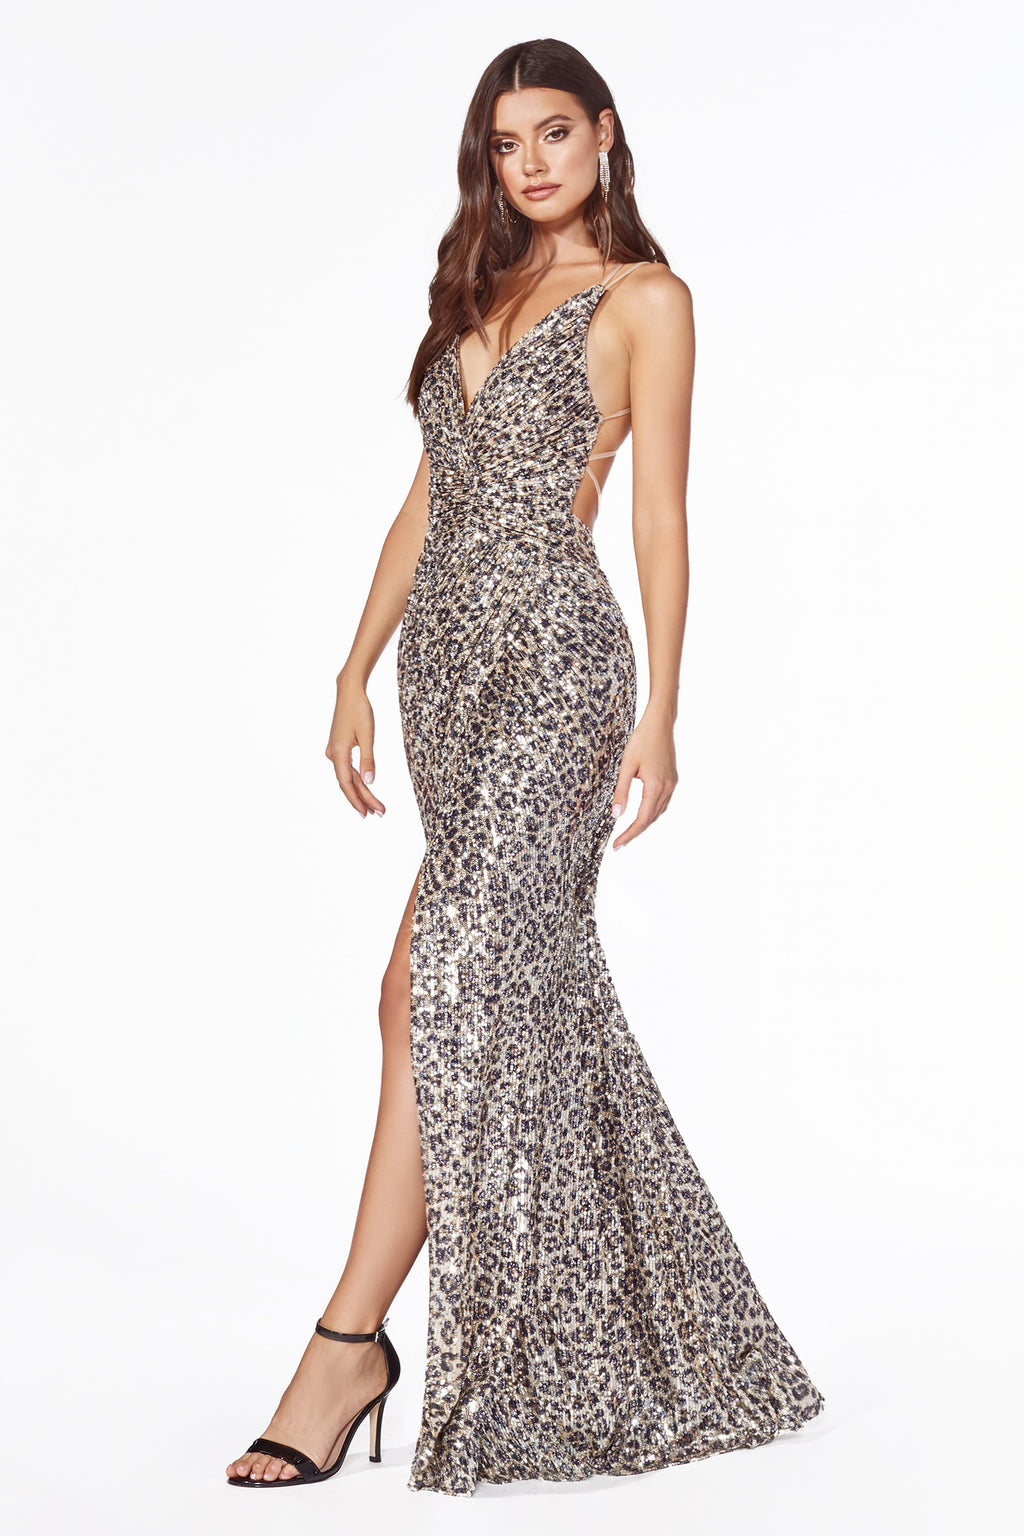 Shimmering Flowing Gown Style #LACDS345 | Prom 2020